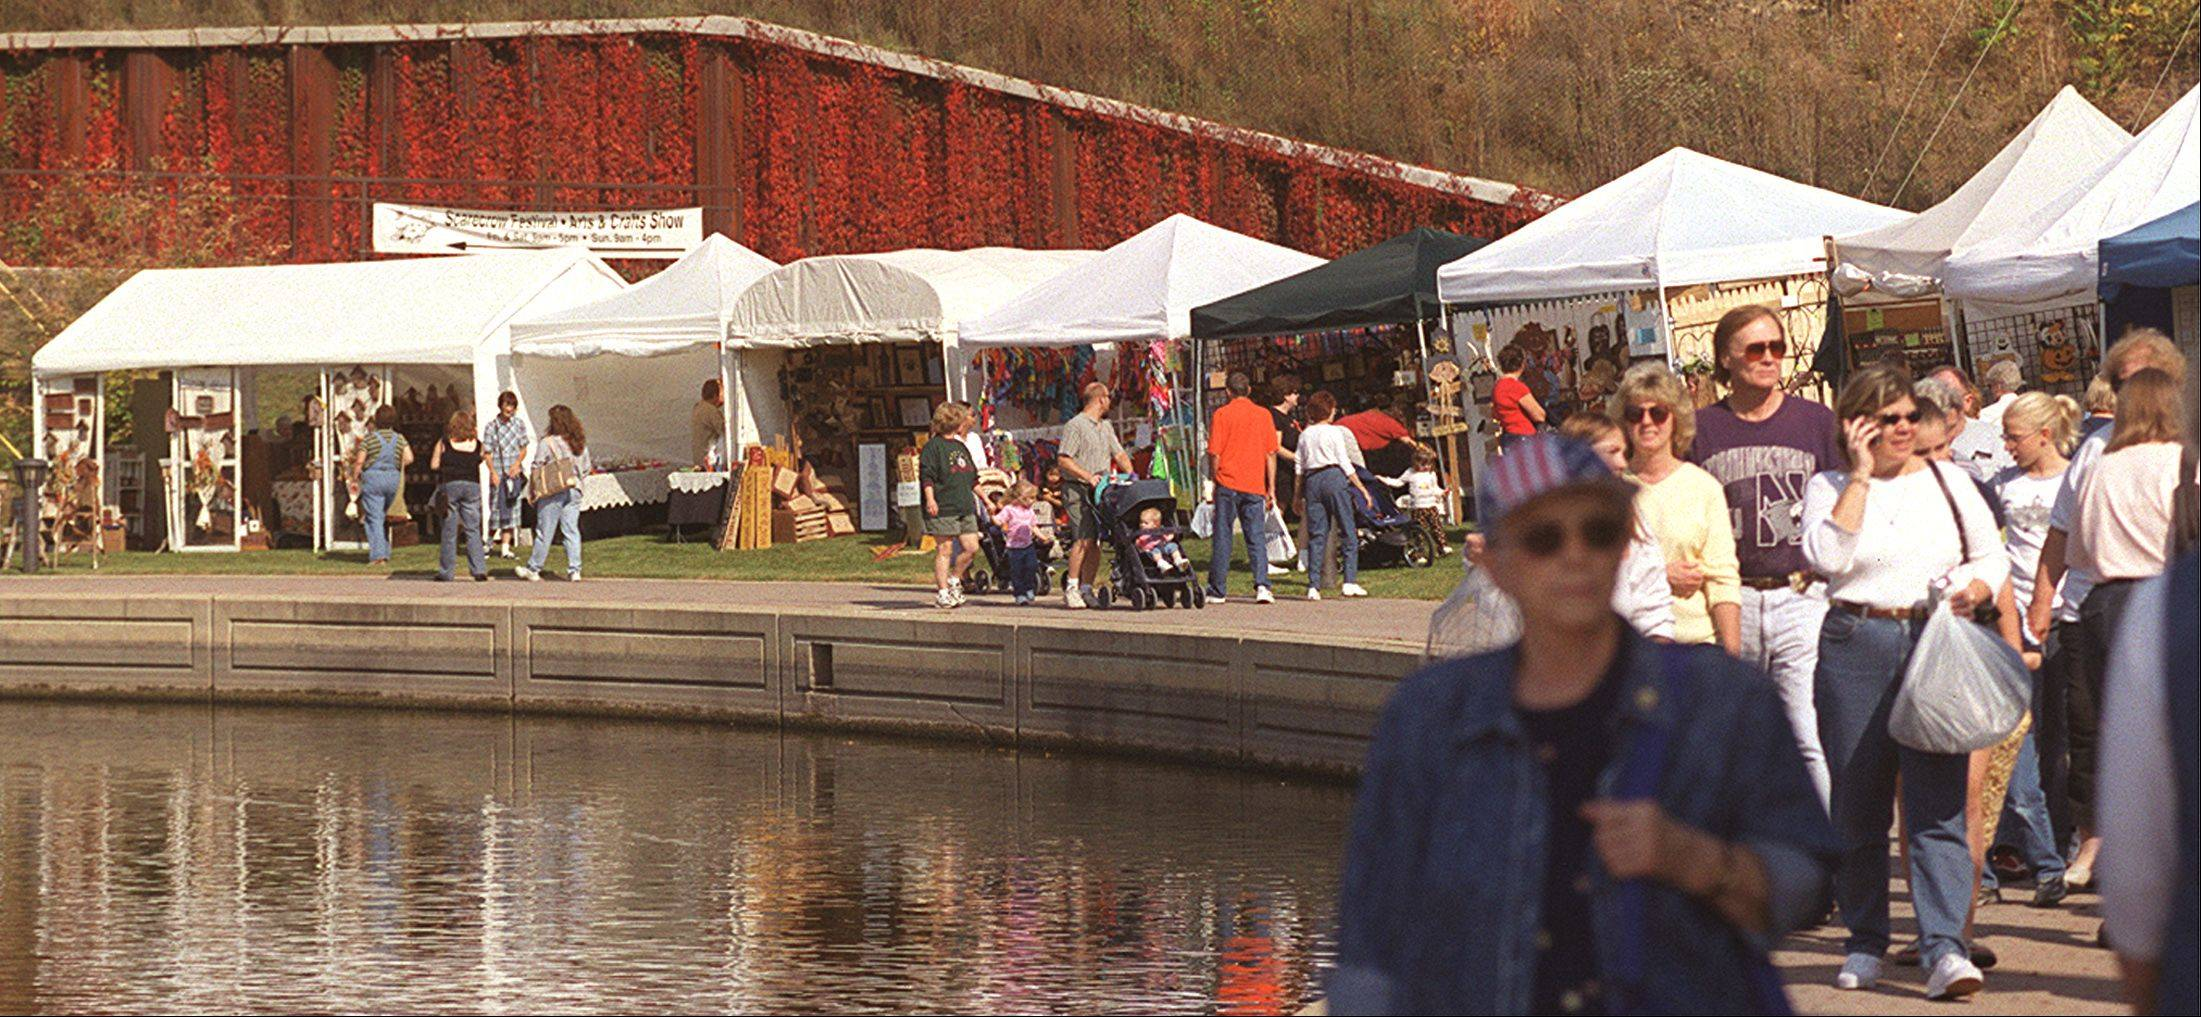 Shoppers pack the riverwalk along the Fox River in St. Charles for a previous Autumn on the Fox Art and Craft Show. This year�s show, part of St. Charles Scarecrow Fest, will be held from 9 a.m. to 5 p.m. Friday and Saturday and 9 a.m. to 4 p.m. Sunday in Pottawatomie Park.